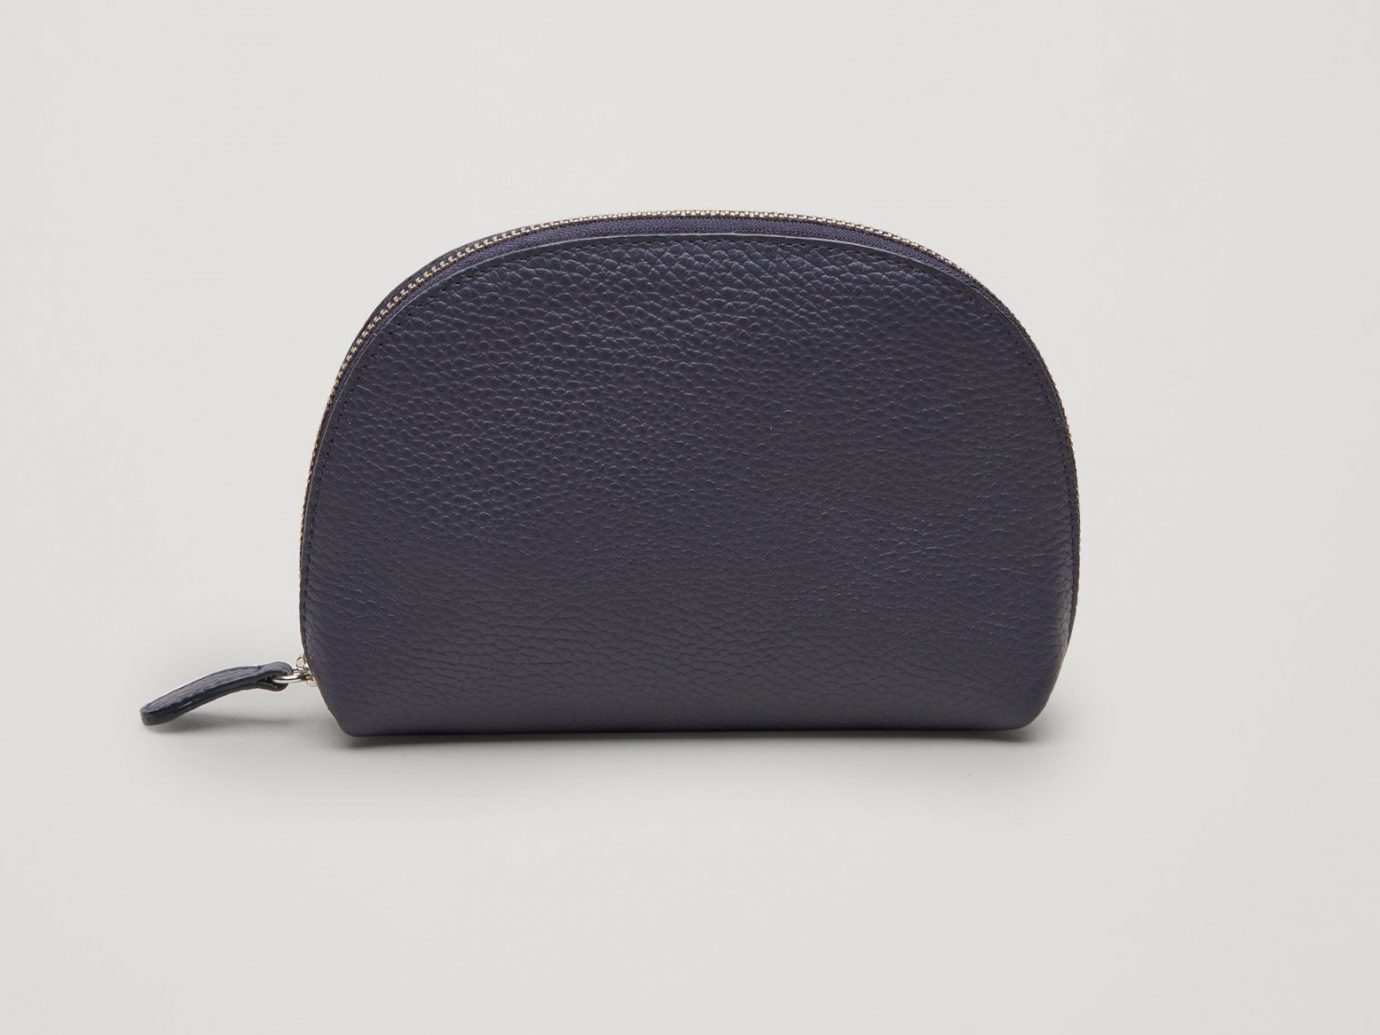 Style + Design coin purse product product design